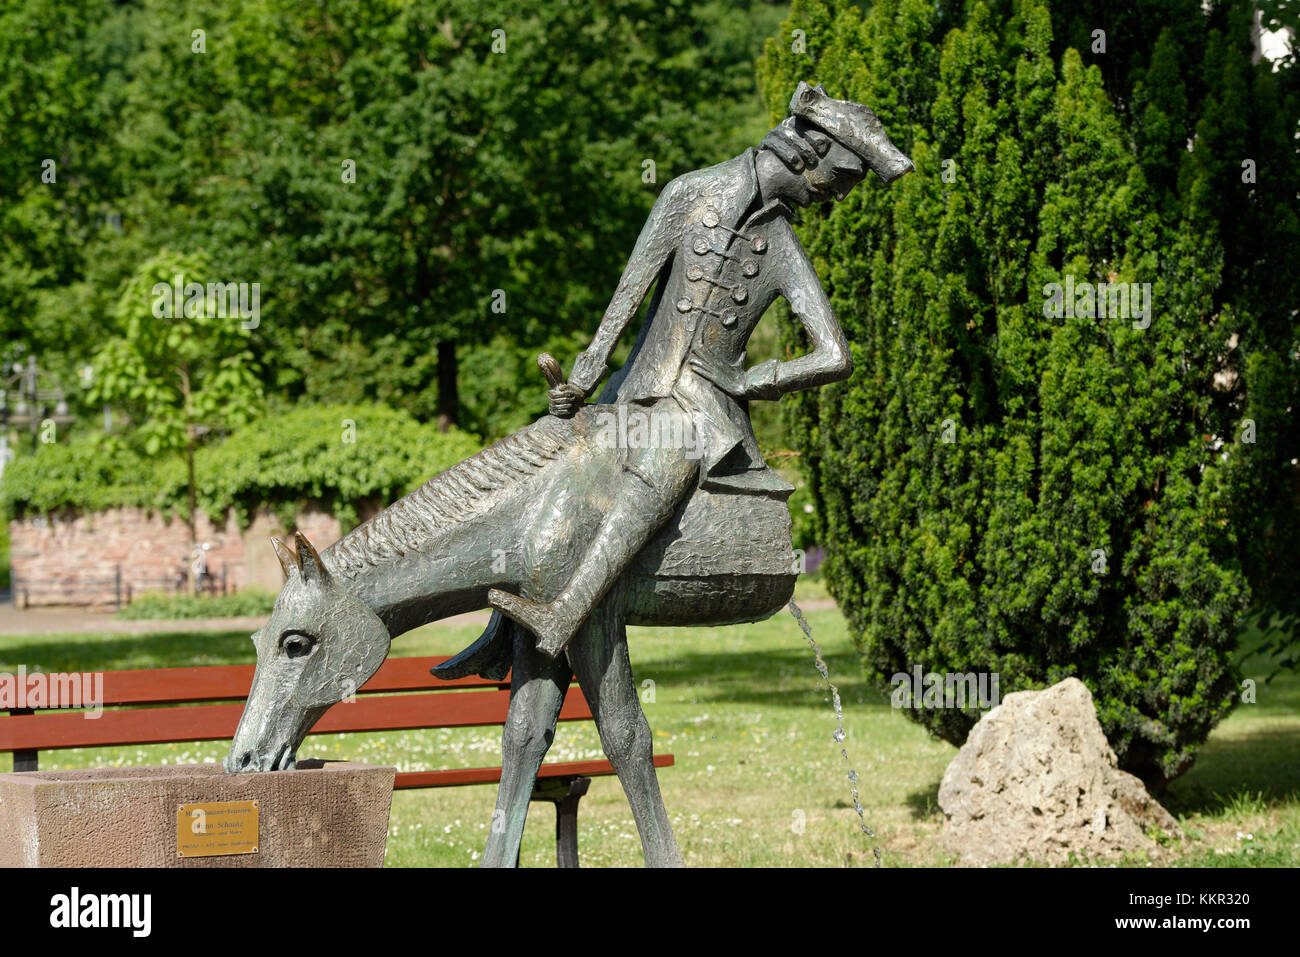 Münchhausen sculpture in the old town of Bodenwerder, Weser Hills, Lower Saxony, Germany Stock Photo